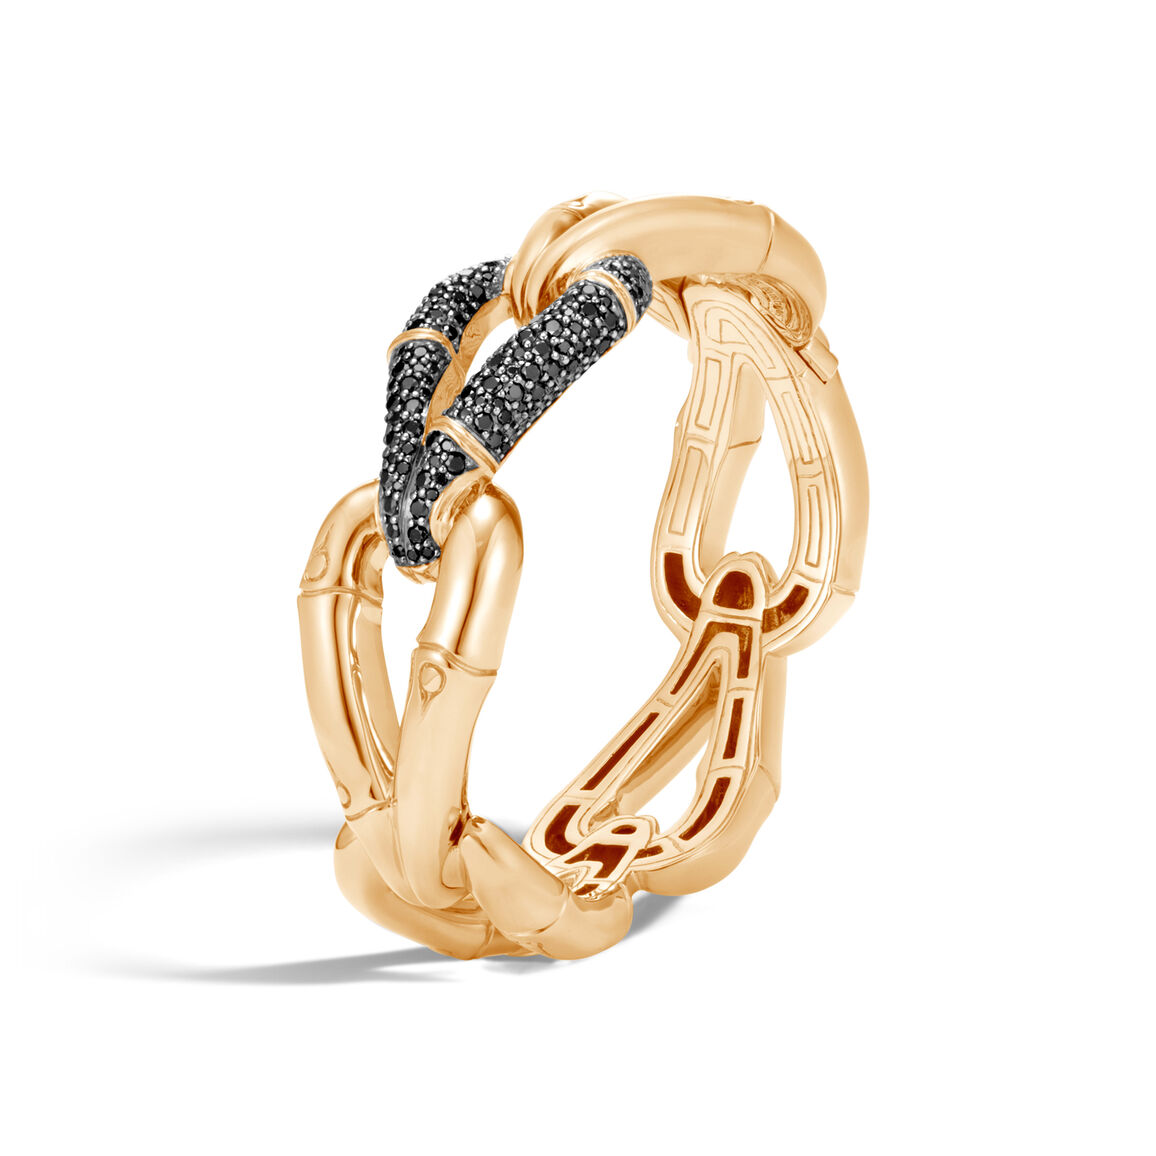 Bamboo 23MM Hinged Bangle in 18K Gold with Black Diamonds